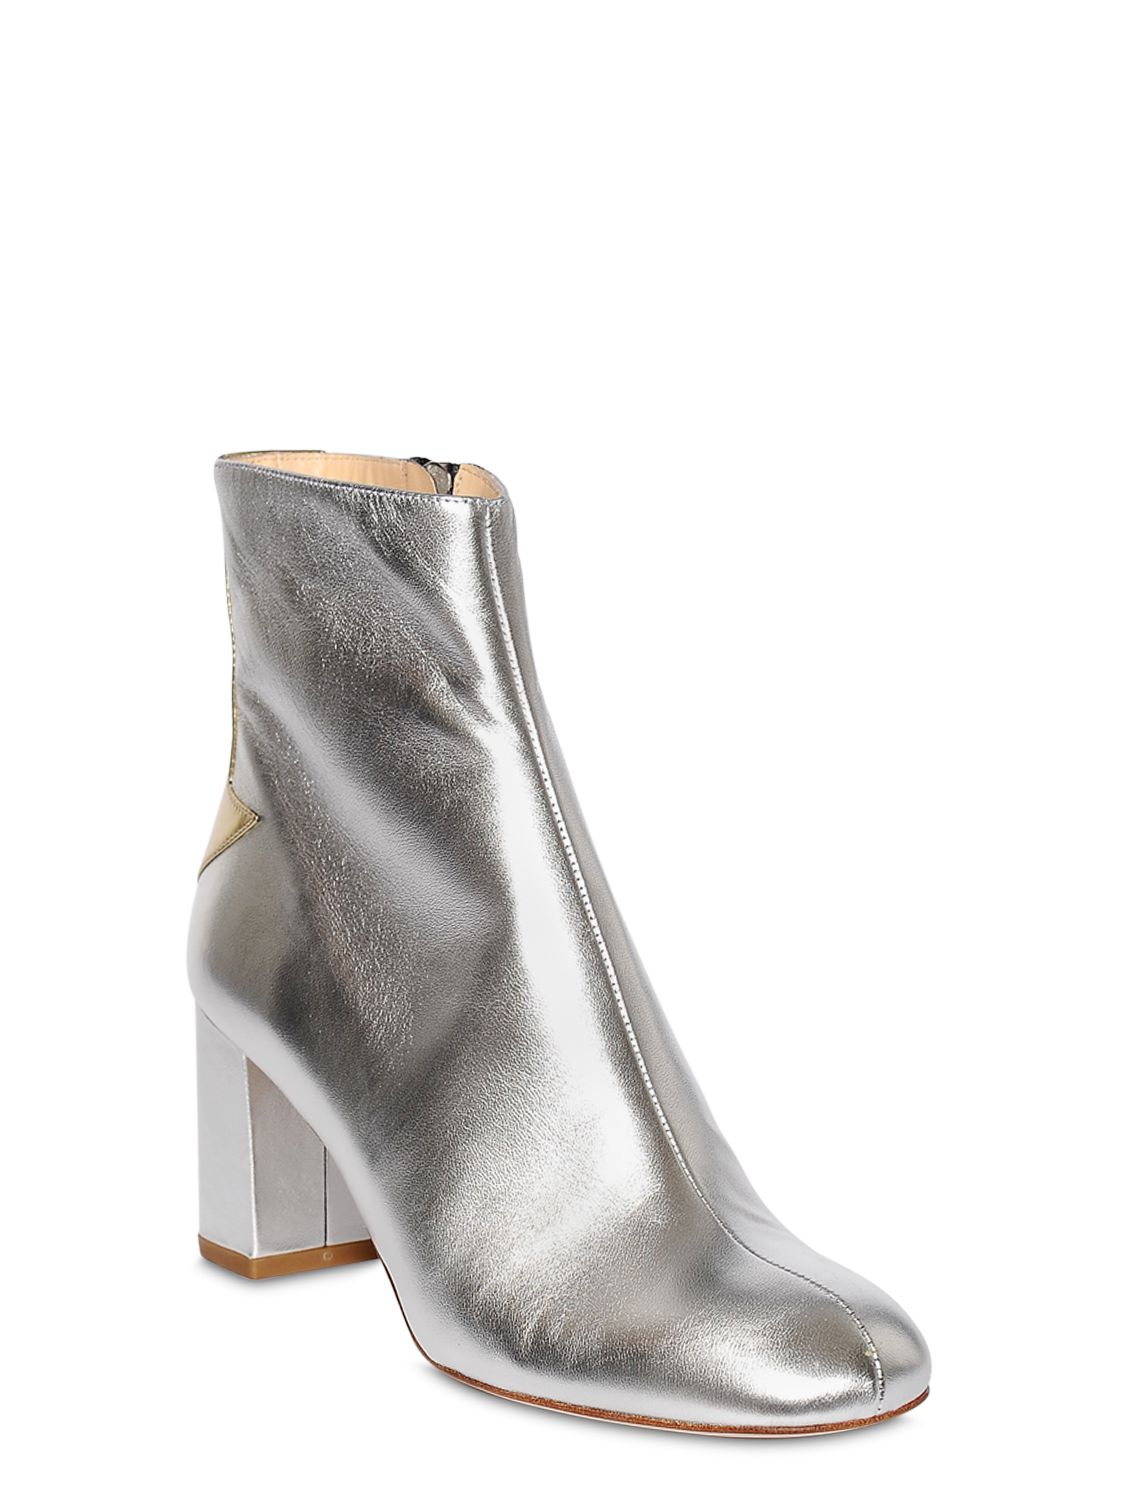 1e15024f6 Camilla Elphick 75mm Silver Lining Leather Boots in Metallic - Lyst